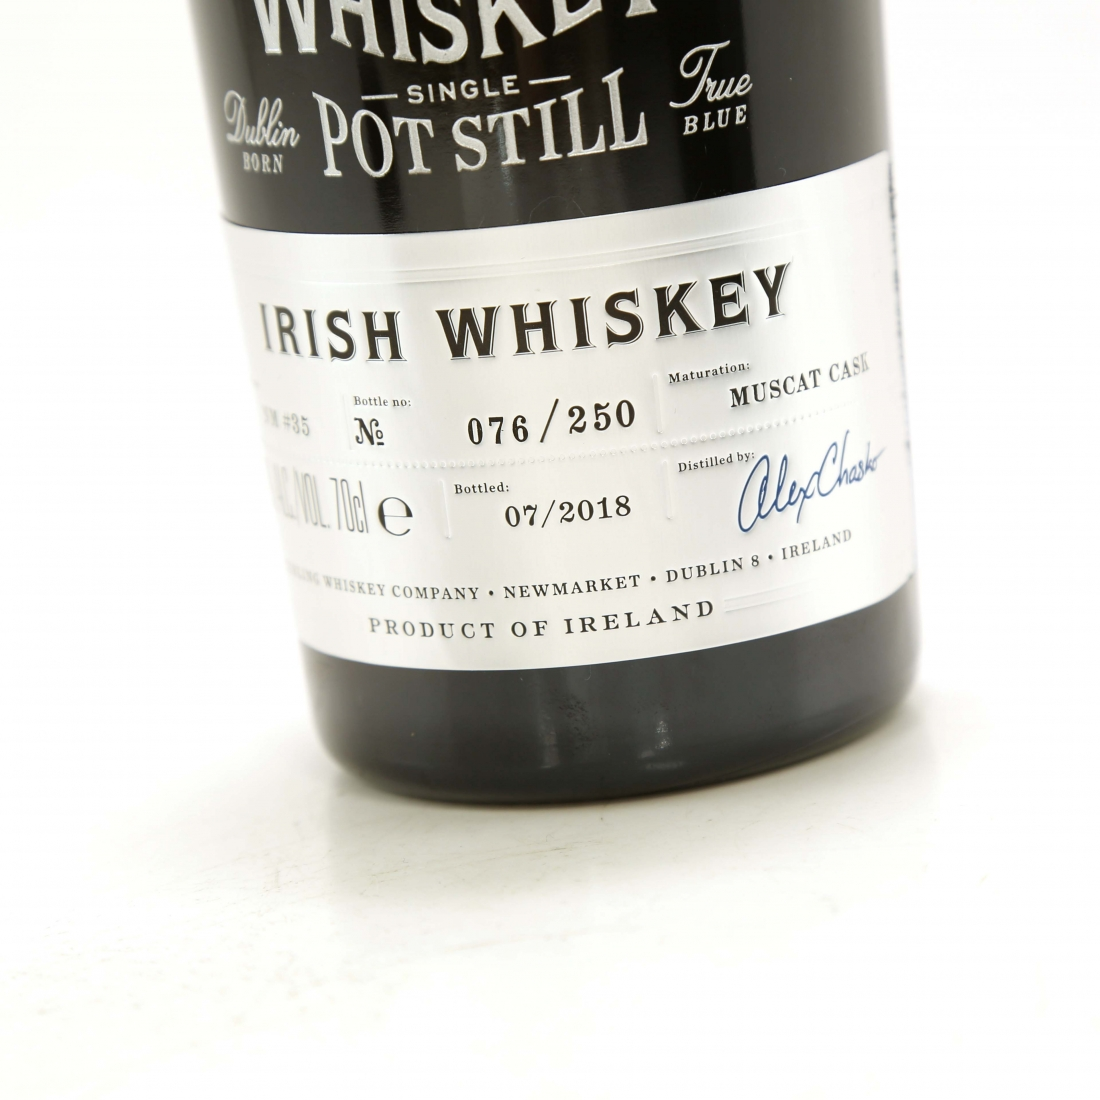 Teeling Celebratory Single Pot Still Whiskey / Bottle #076